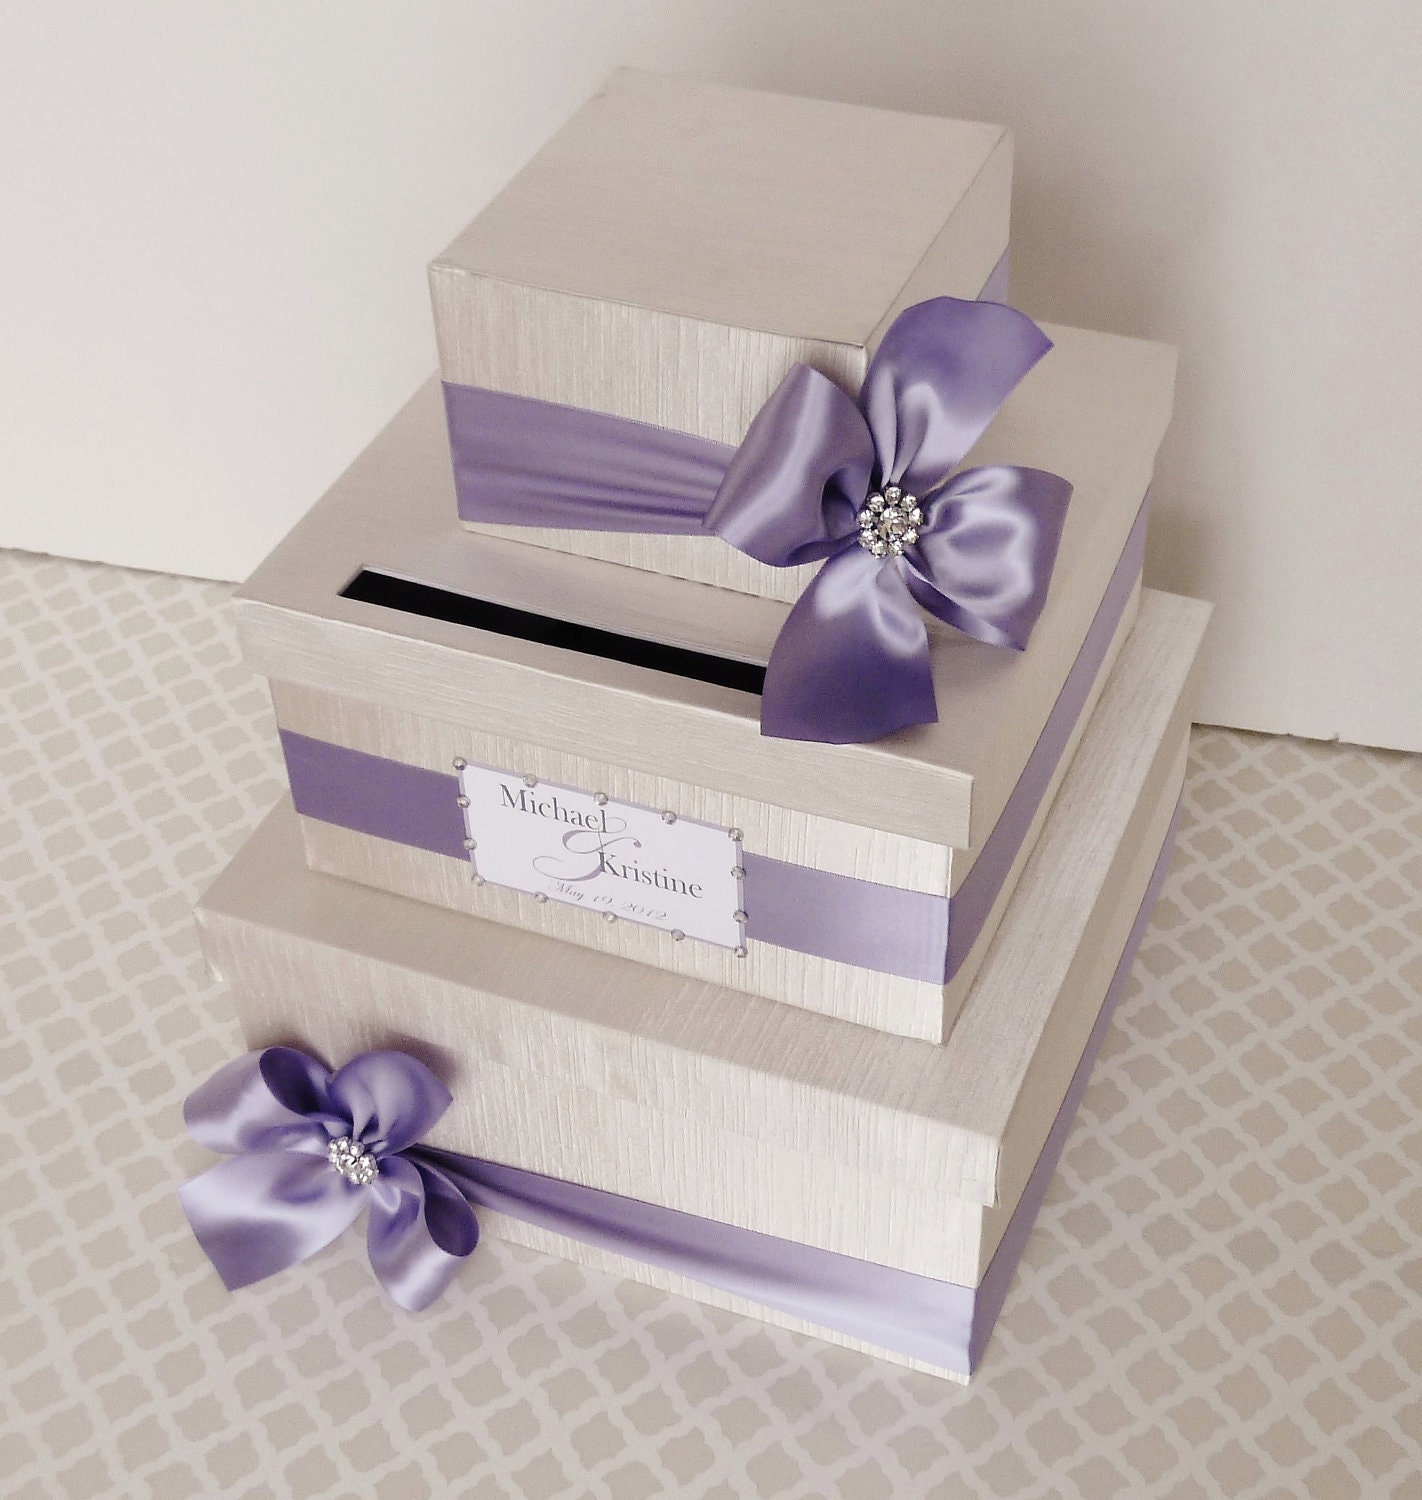 Unique Wedding Card Holder Ideas: Custom Made WEDDING CARD BOX Money Holder Purple Wisteria